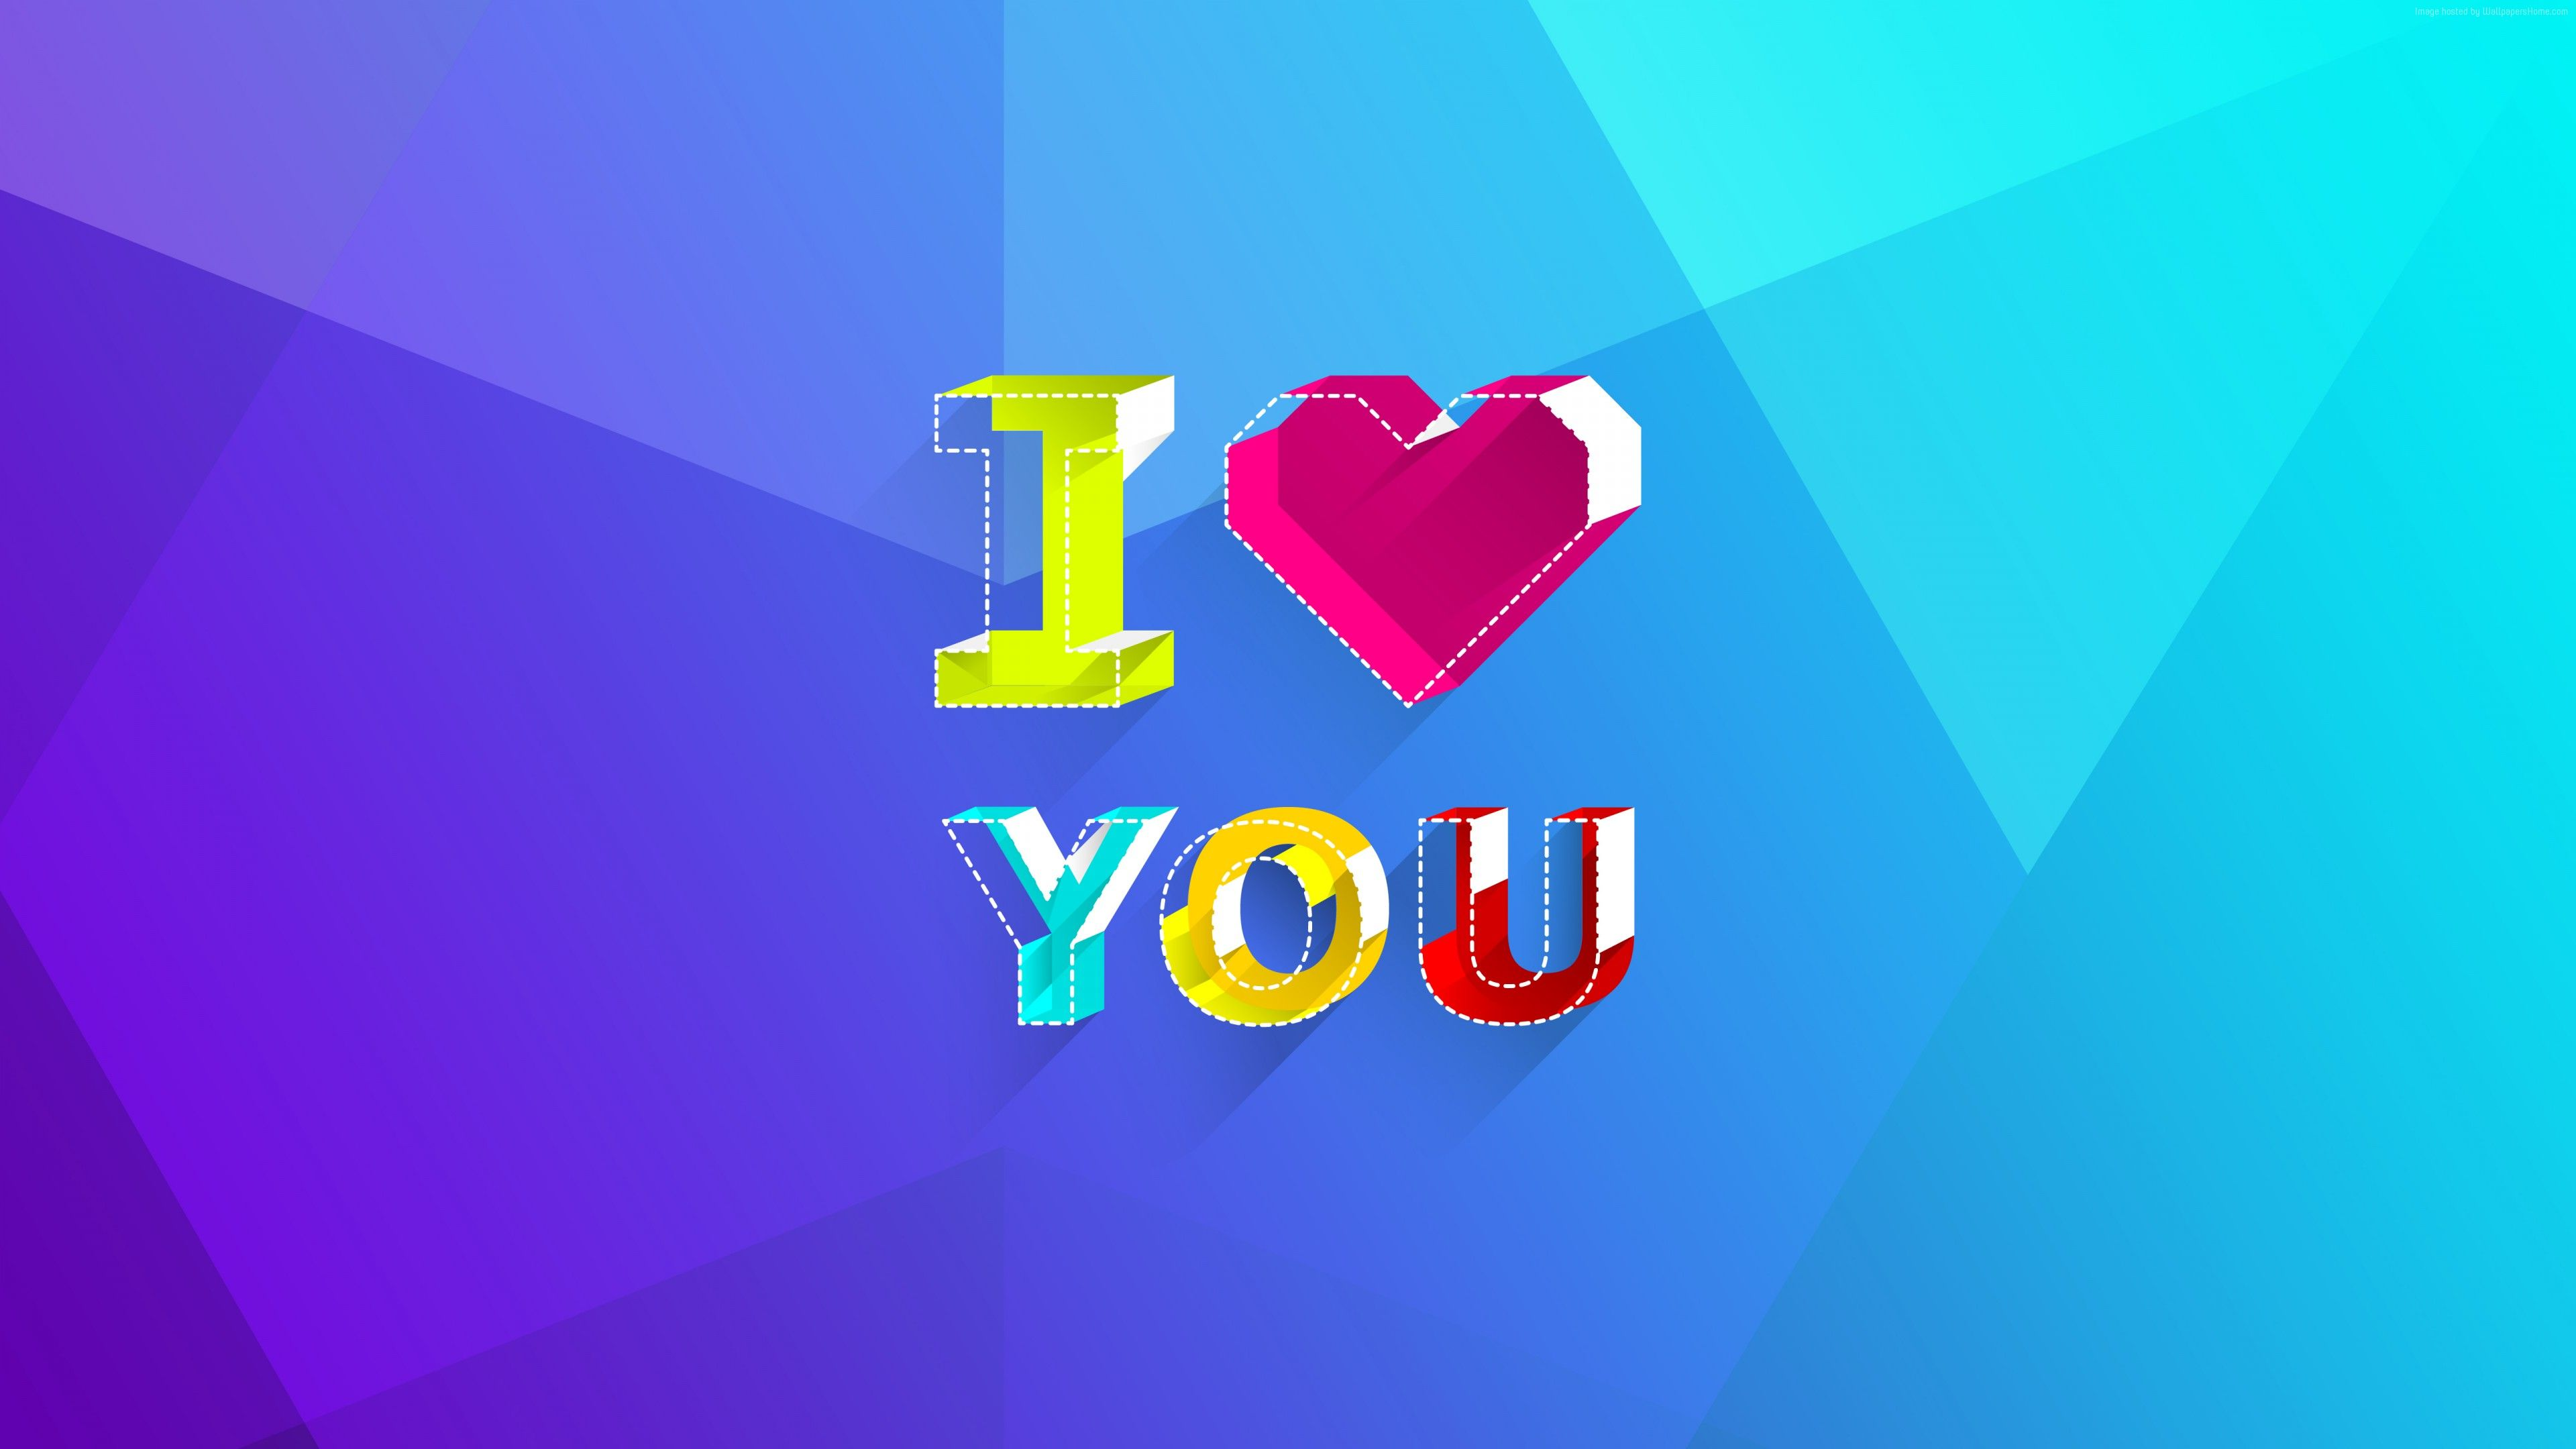 I Love You 4k Text Background 4k Wallpaper I Love You 4k Text